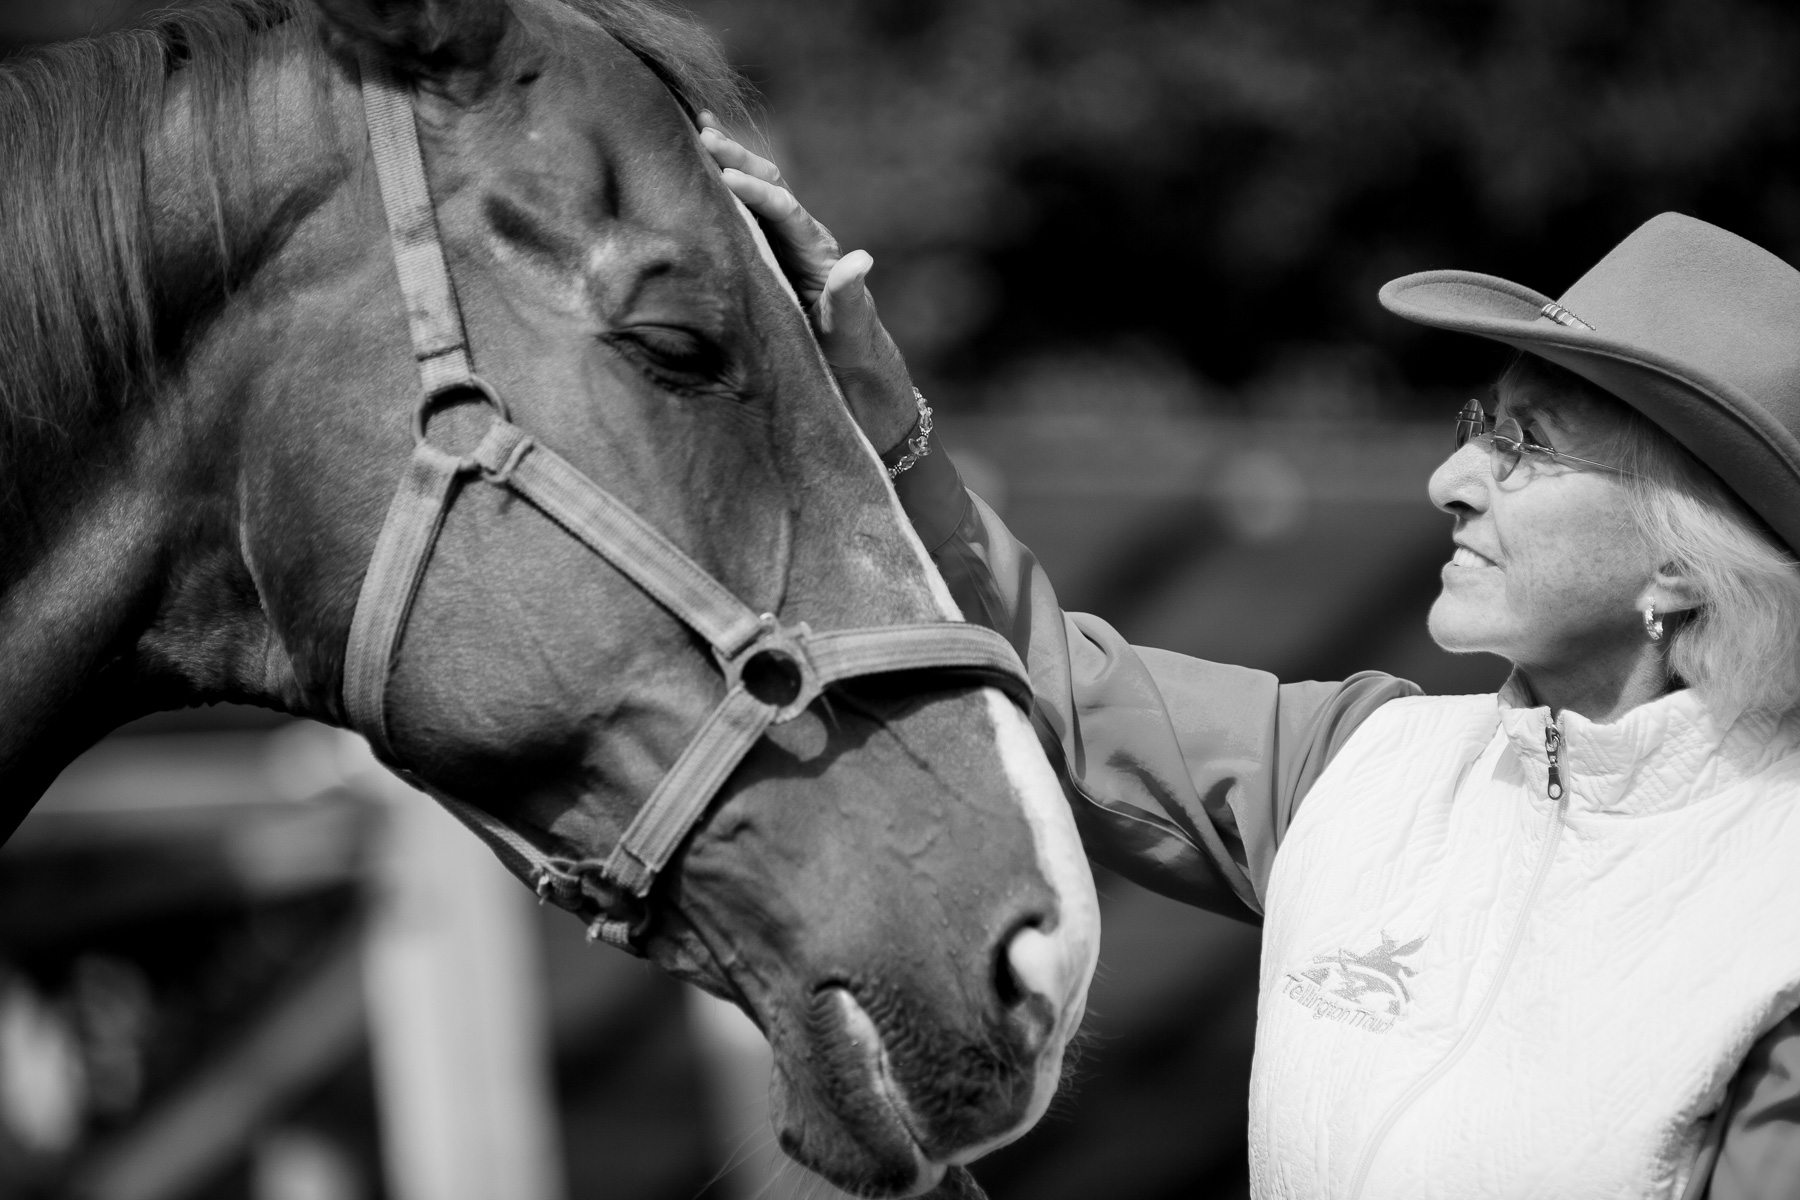 Photos of world-renowned equine expert Linda Tellington-Jones by Luka Dakskobler.